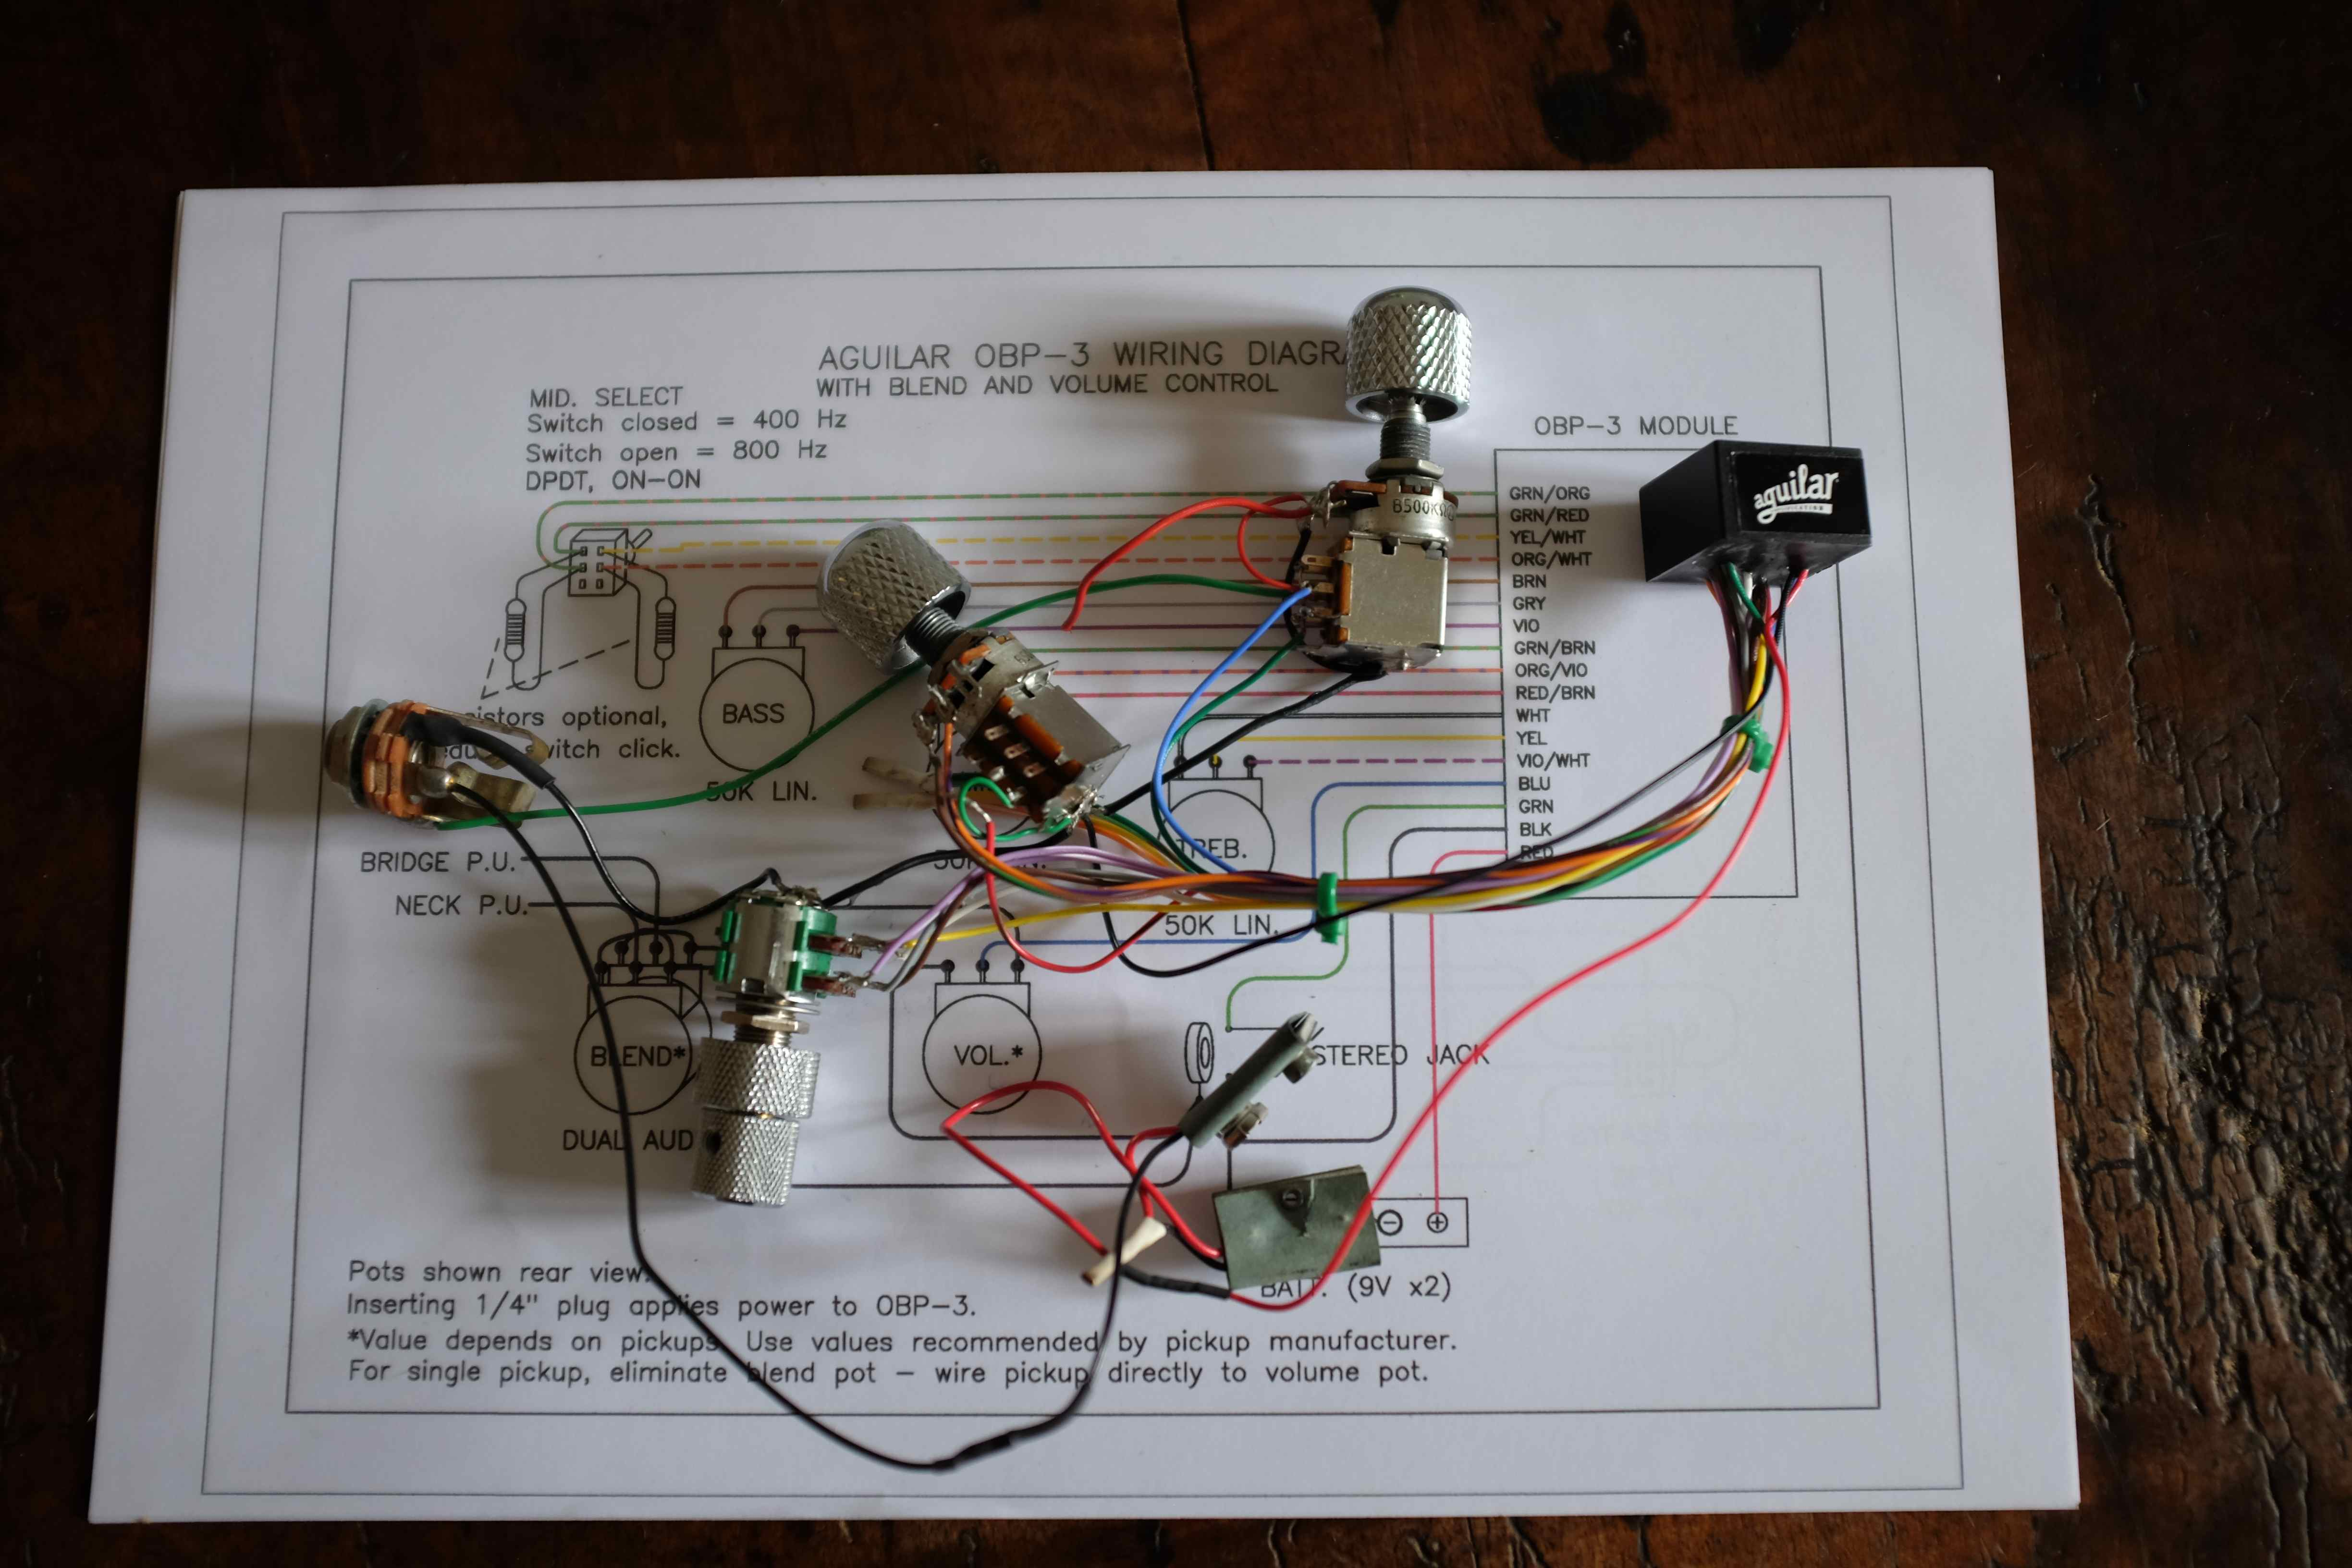 aguilar obp 3 927967 aguilar obp 3 image ( 927967) audiofanzine aguilar obp 3 preamp wiring diagram at fashall.co